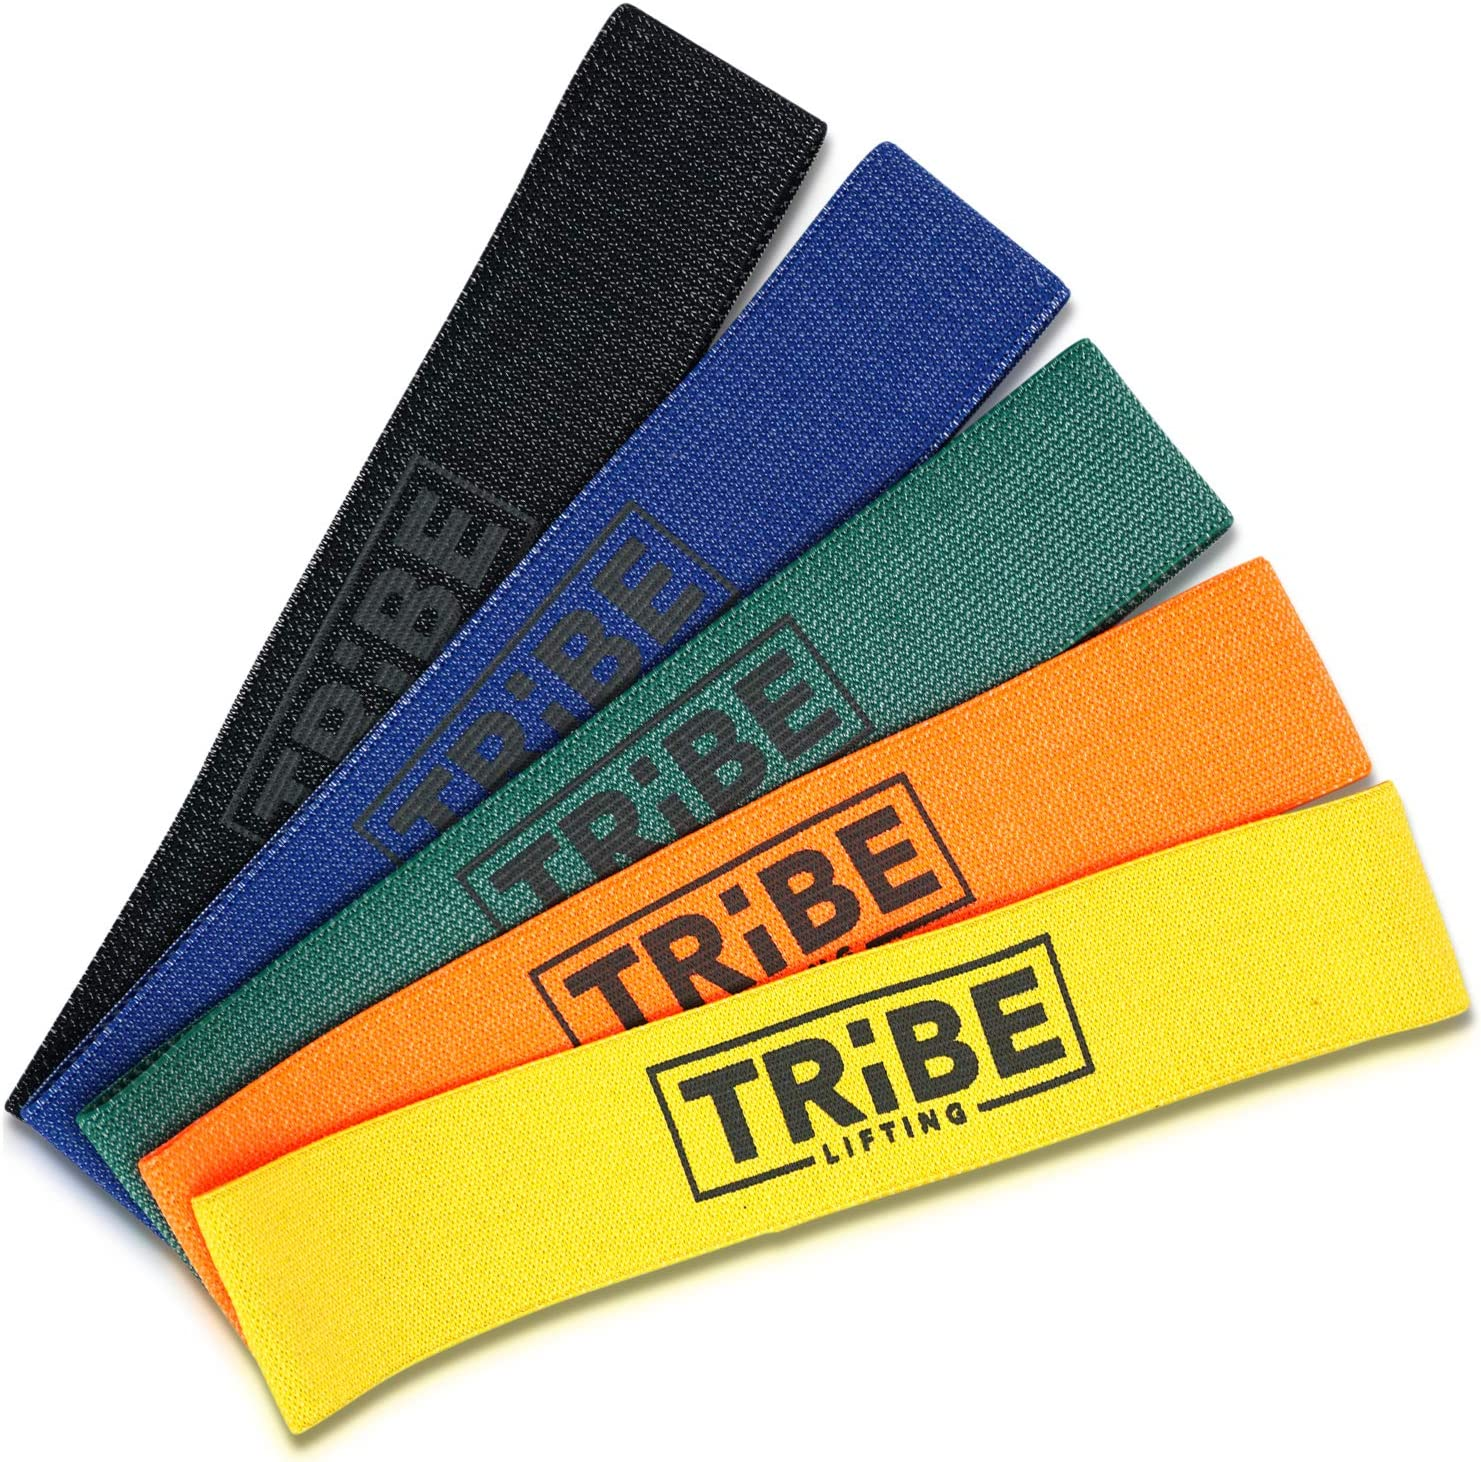 Amazon Com Tribe Lifting Fabric Resistance Bands No Snap Booty Bands For Exercise Home Gym Physical Therapy 12 X 2 5 Pack Sports Outdoors